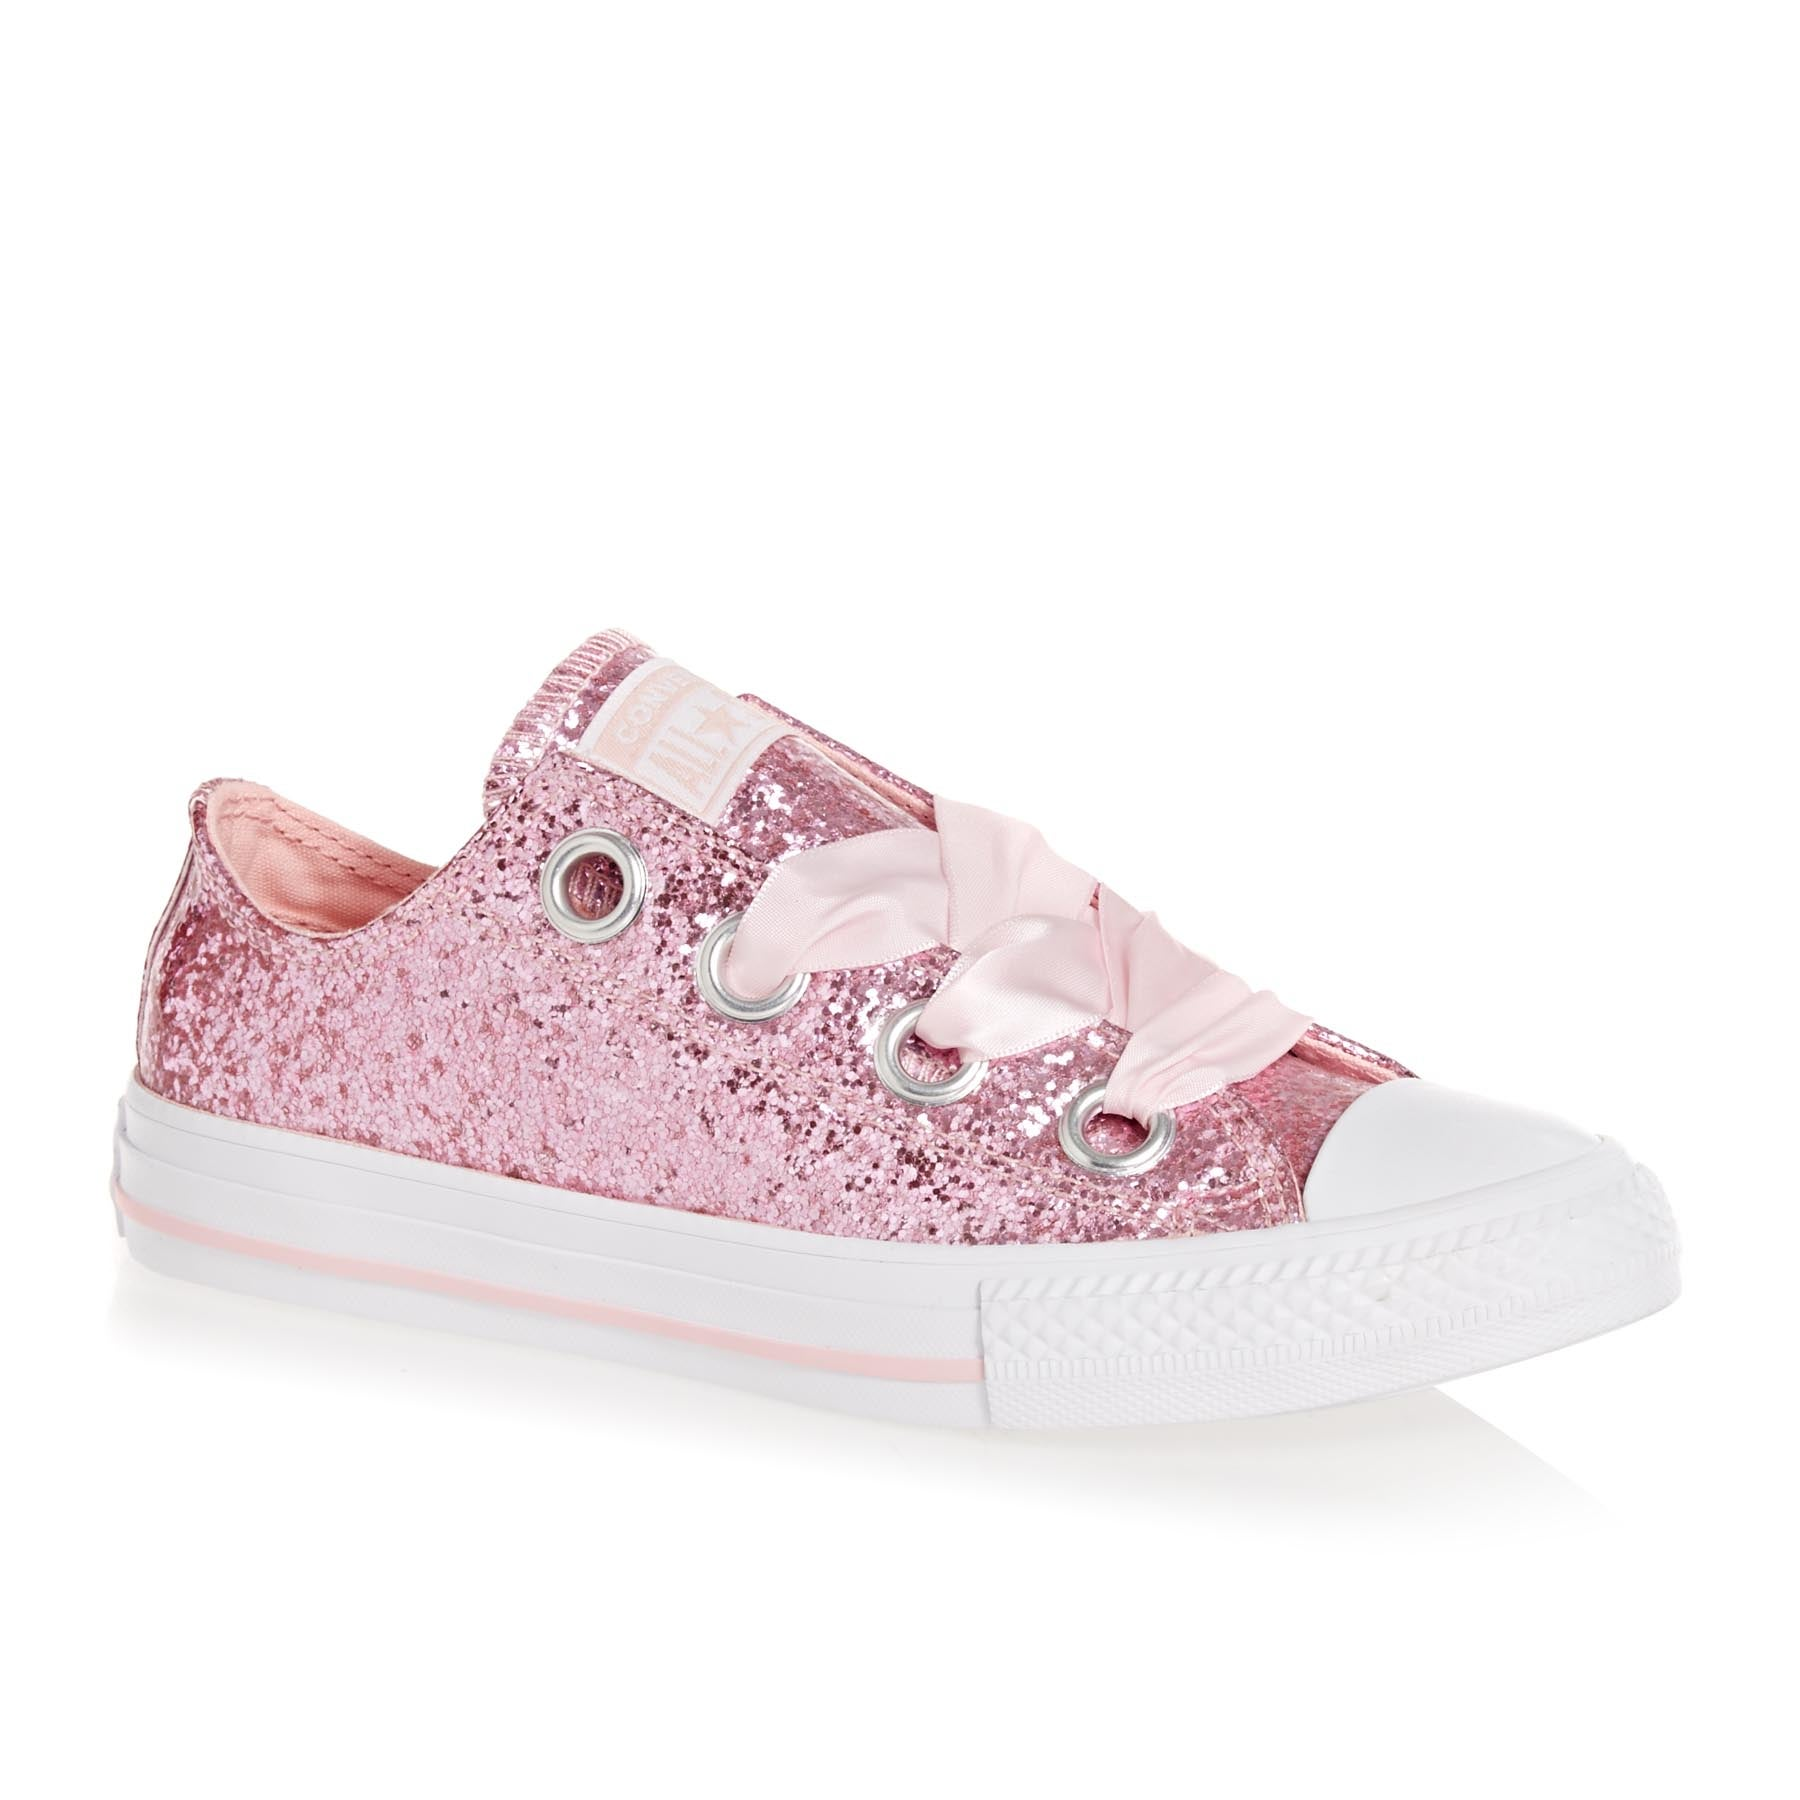 Converse Chuck Taylor All Star Big Eyelets Ox Girls Shoes - Storm Pink White White